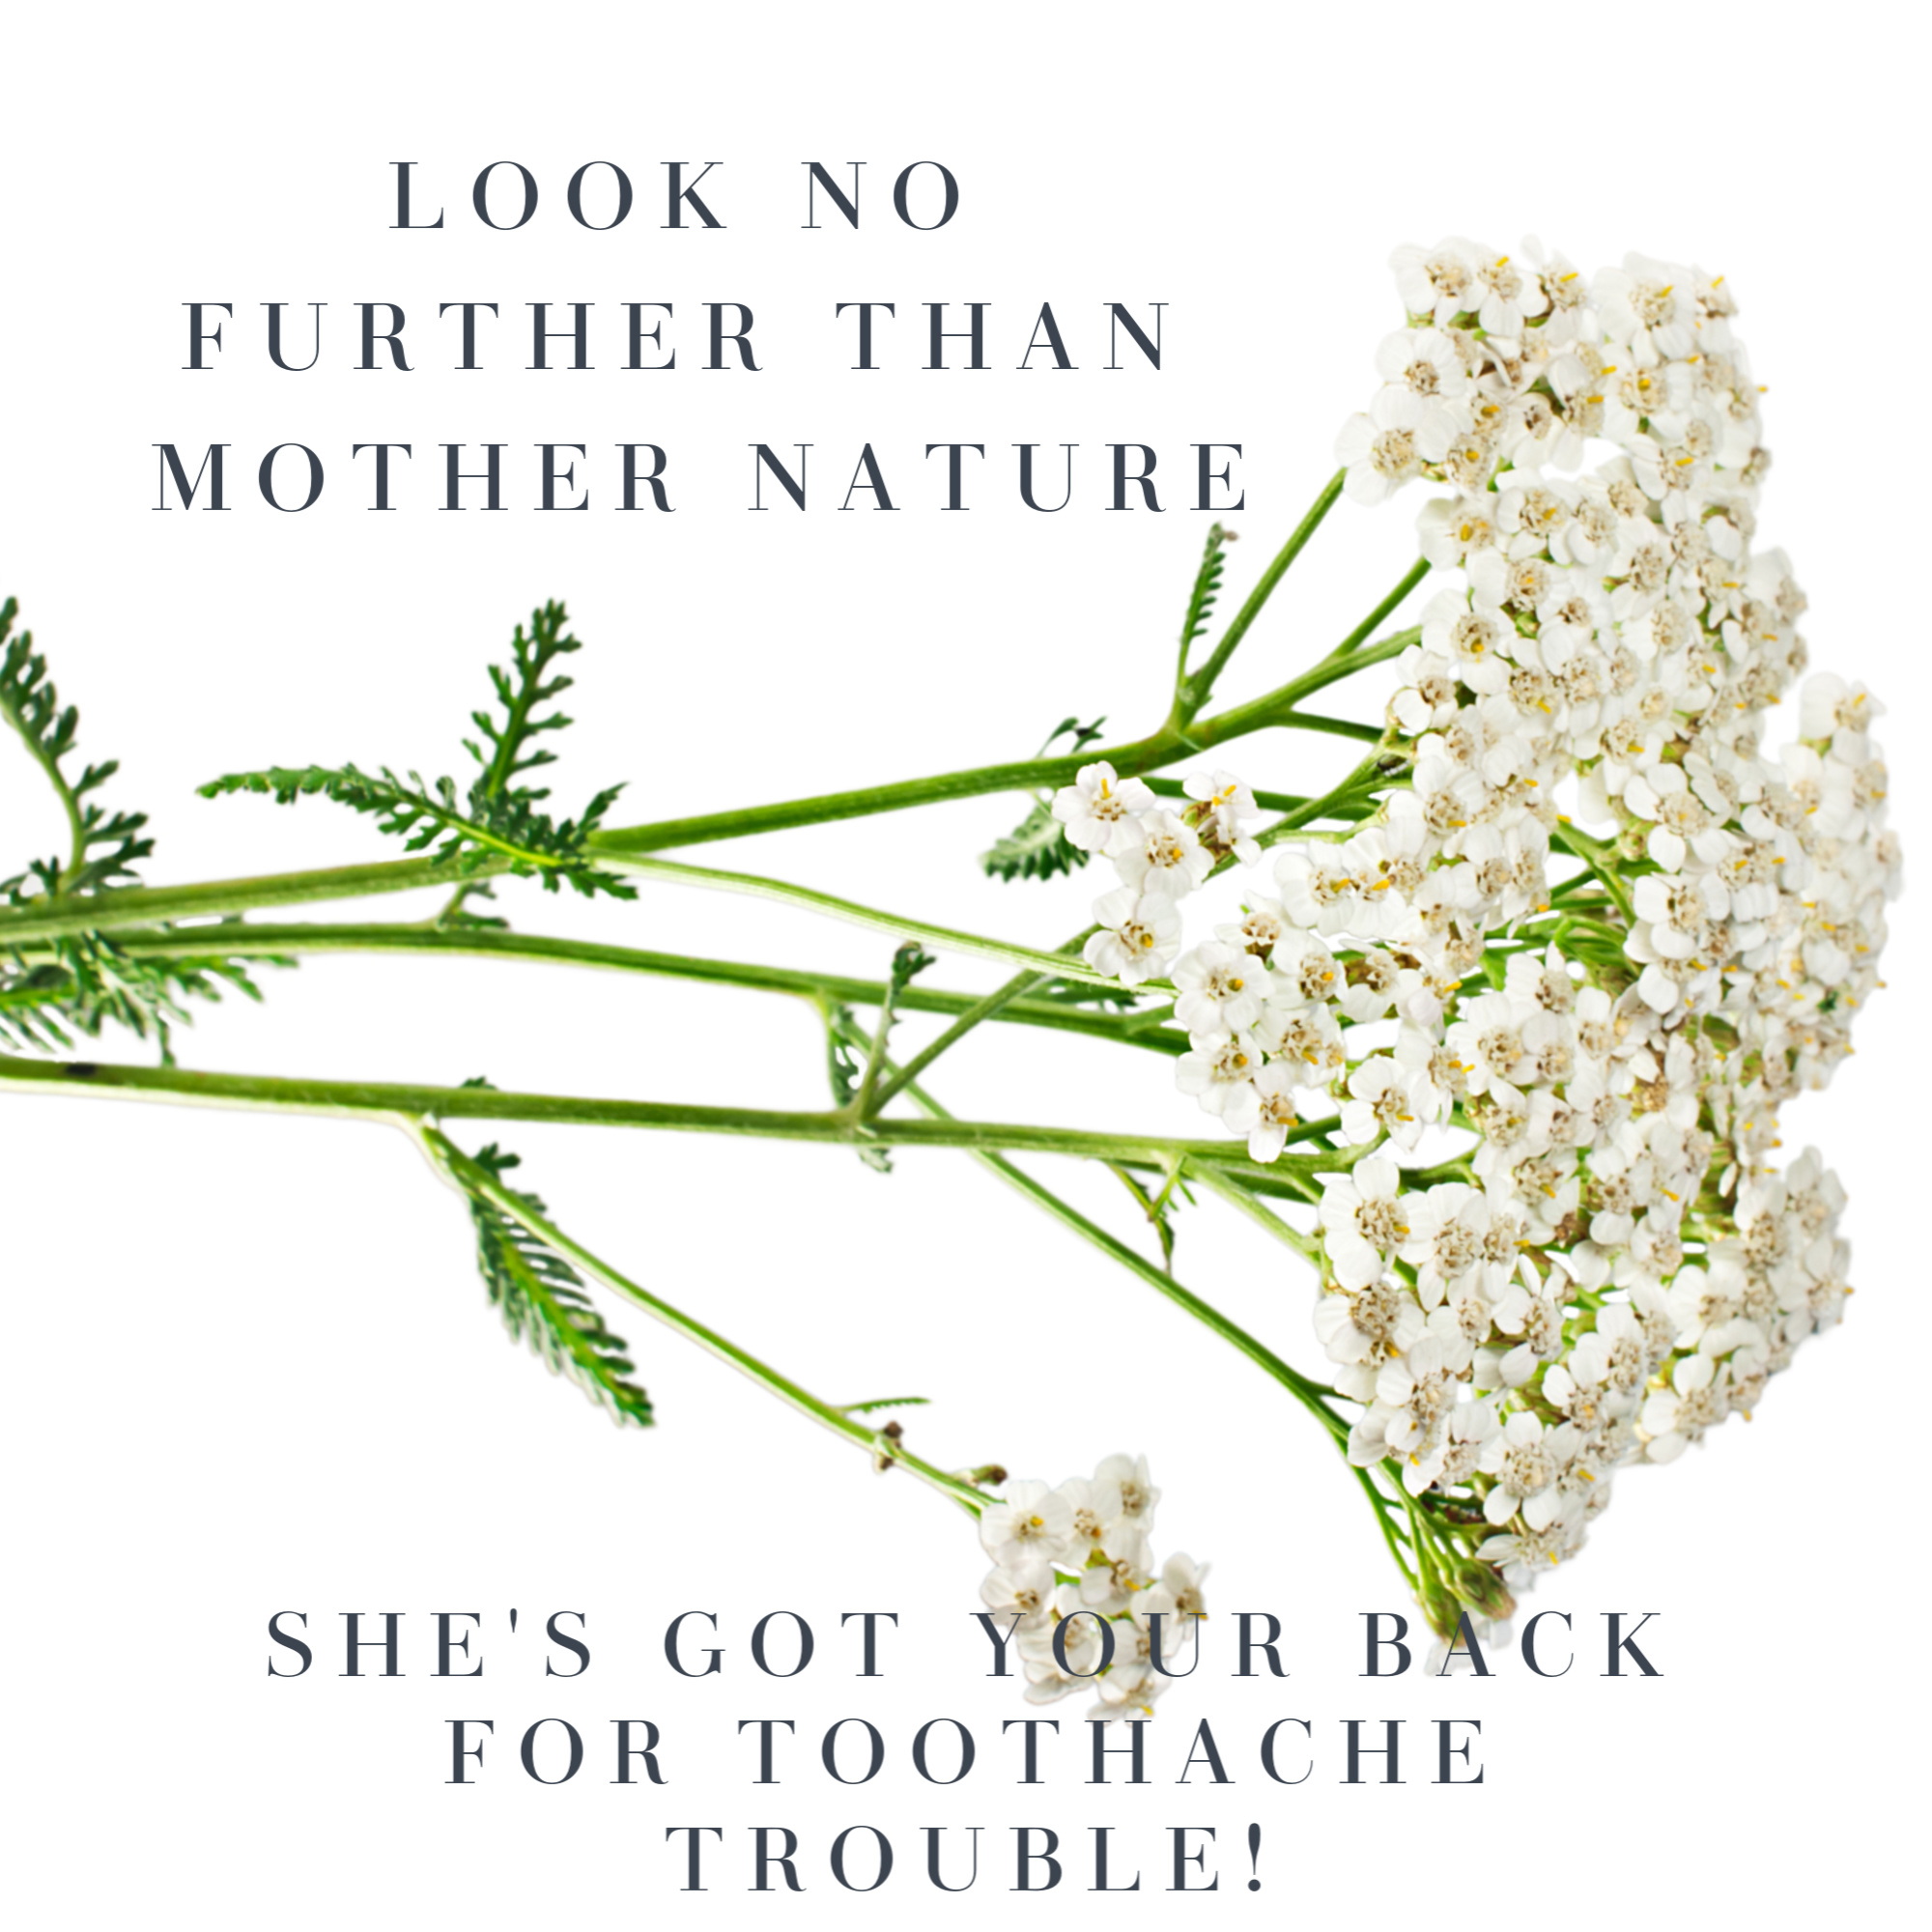 sprig of yarrow for natural toothache relief